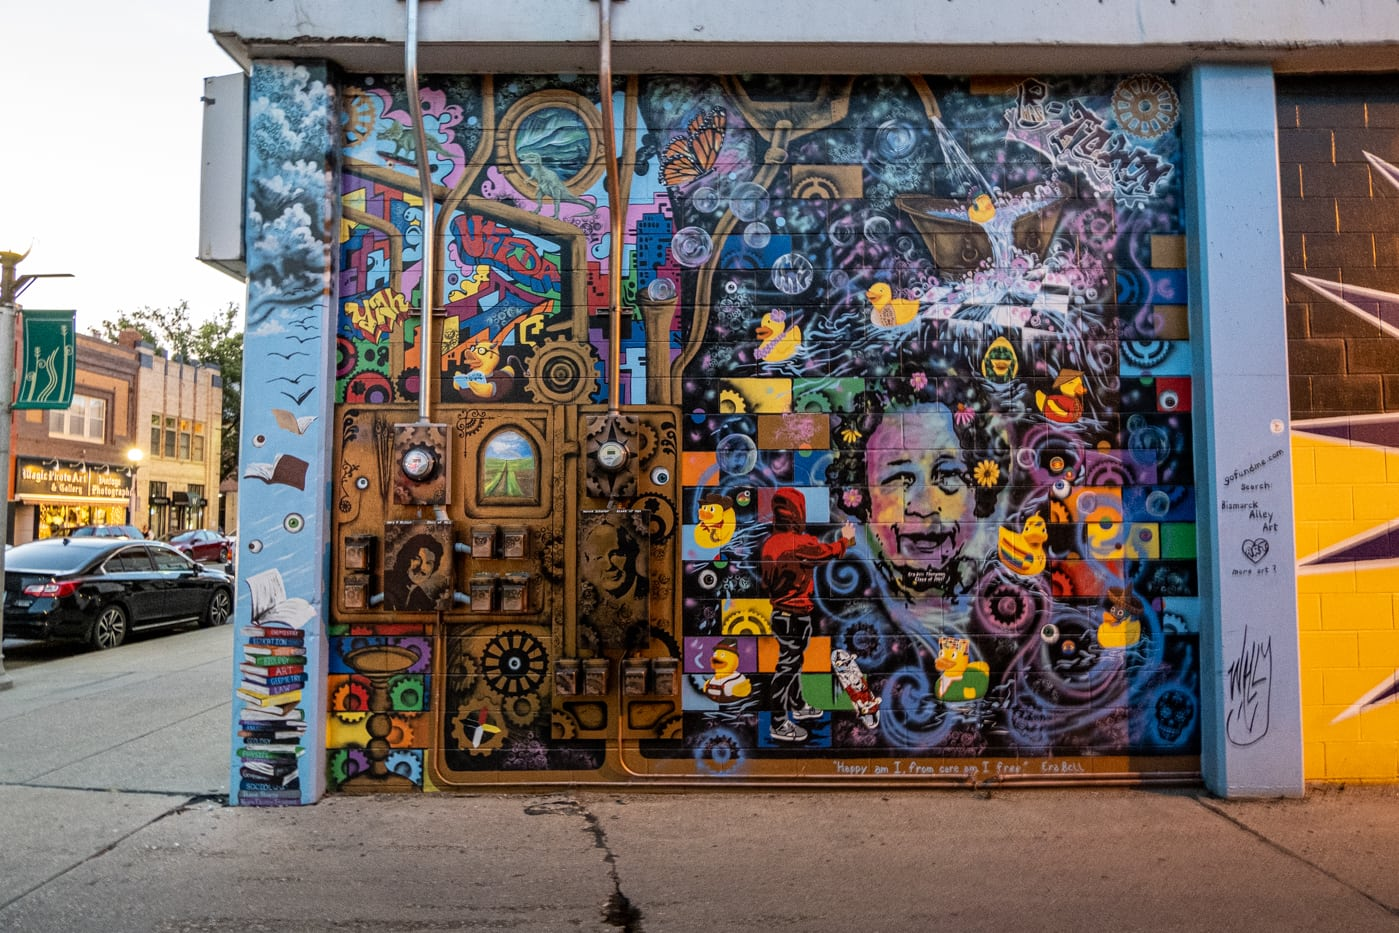 Mural created by a dozen art students at Bismarck High School. Alley 5.5: Bismarck Art Alley in North Dakota - Street art and Murals in Bismarck, North Dakota